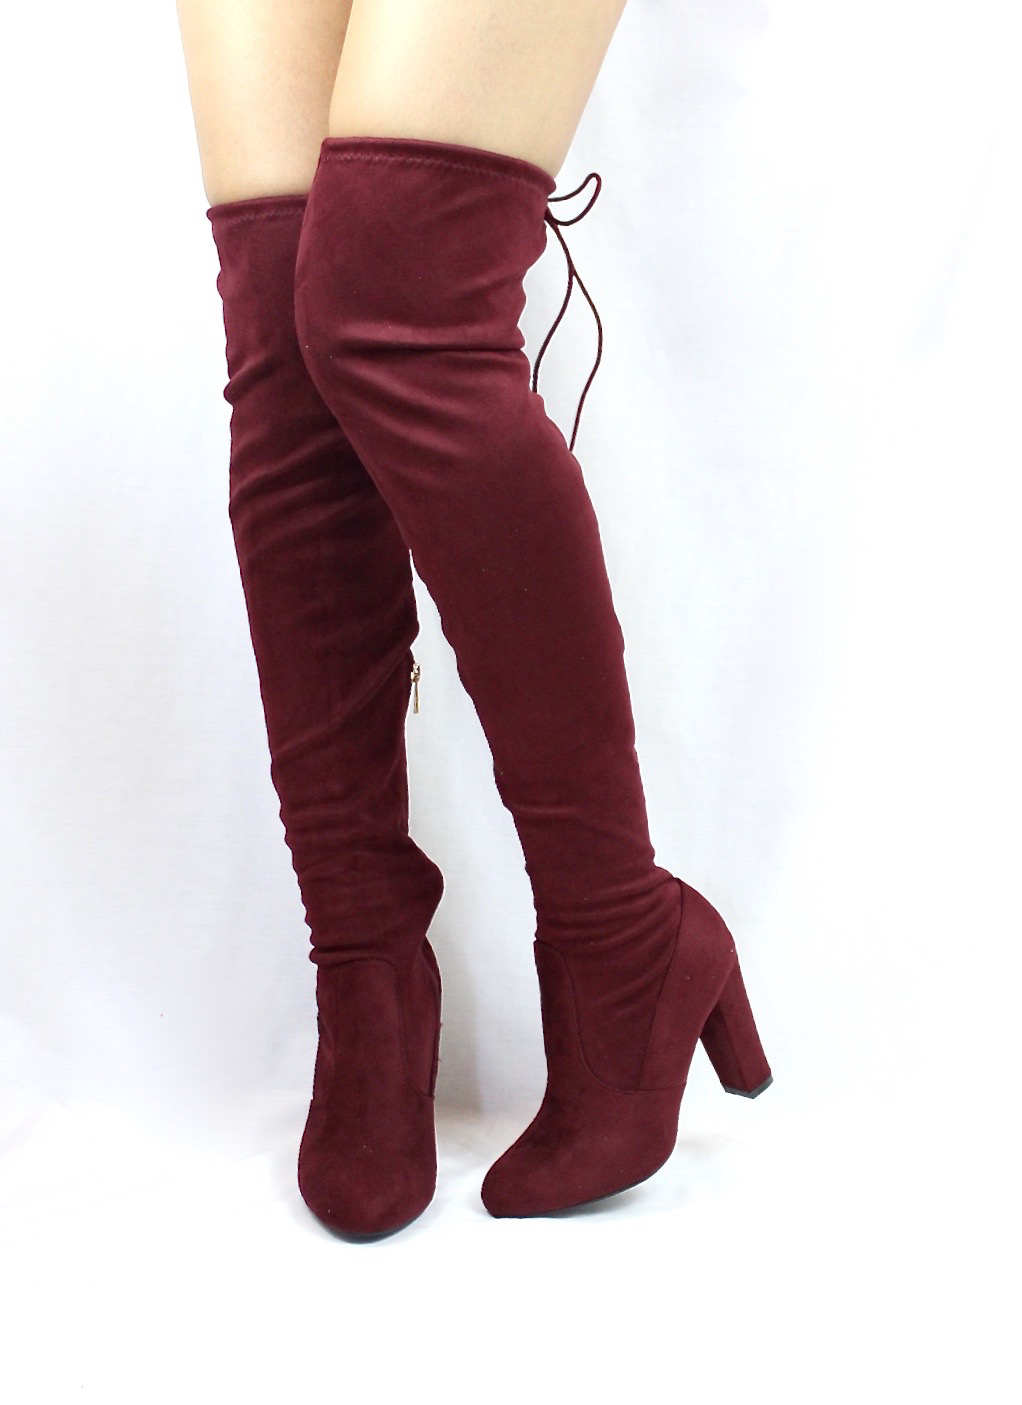 Bamboo Hilltop-20 Burgundy Over the Knee Chunky Heel Boots-3929